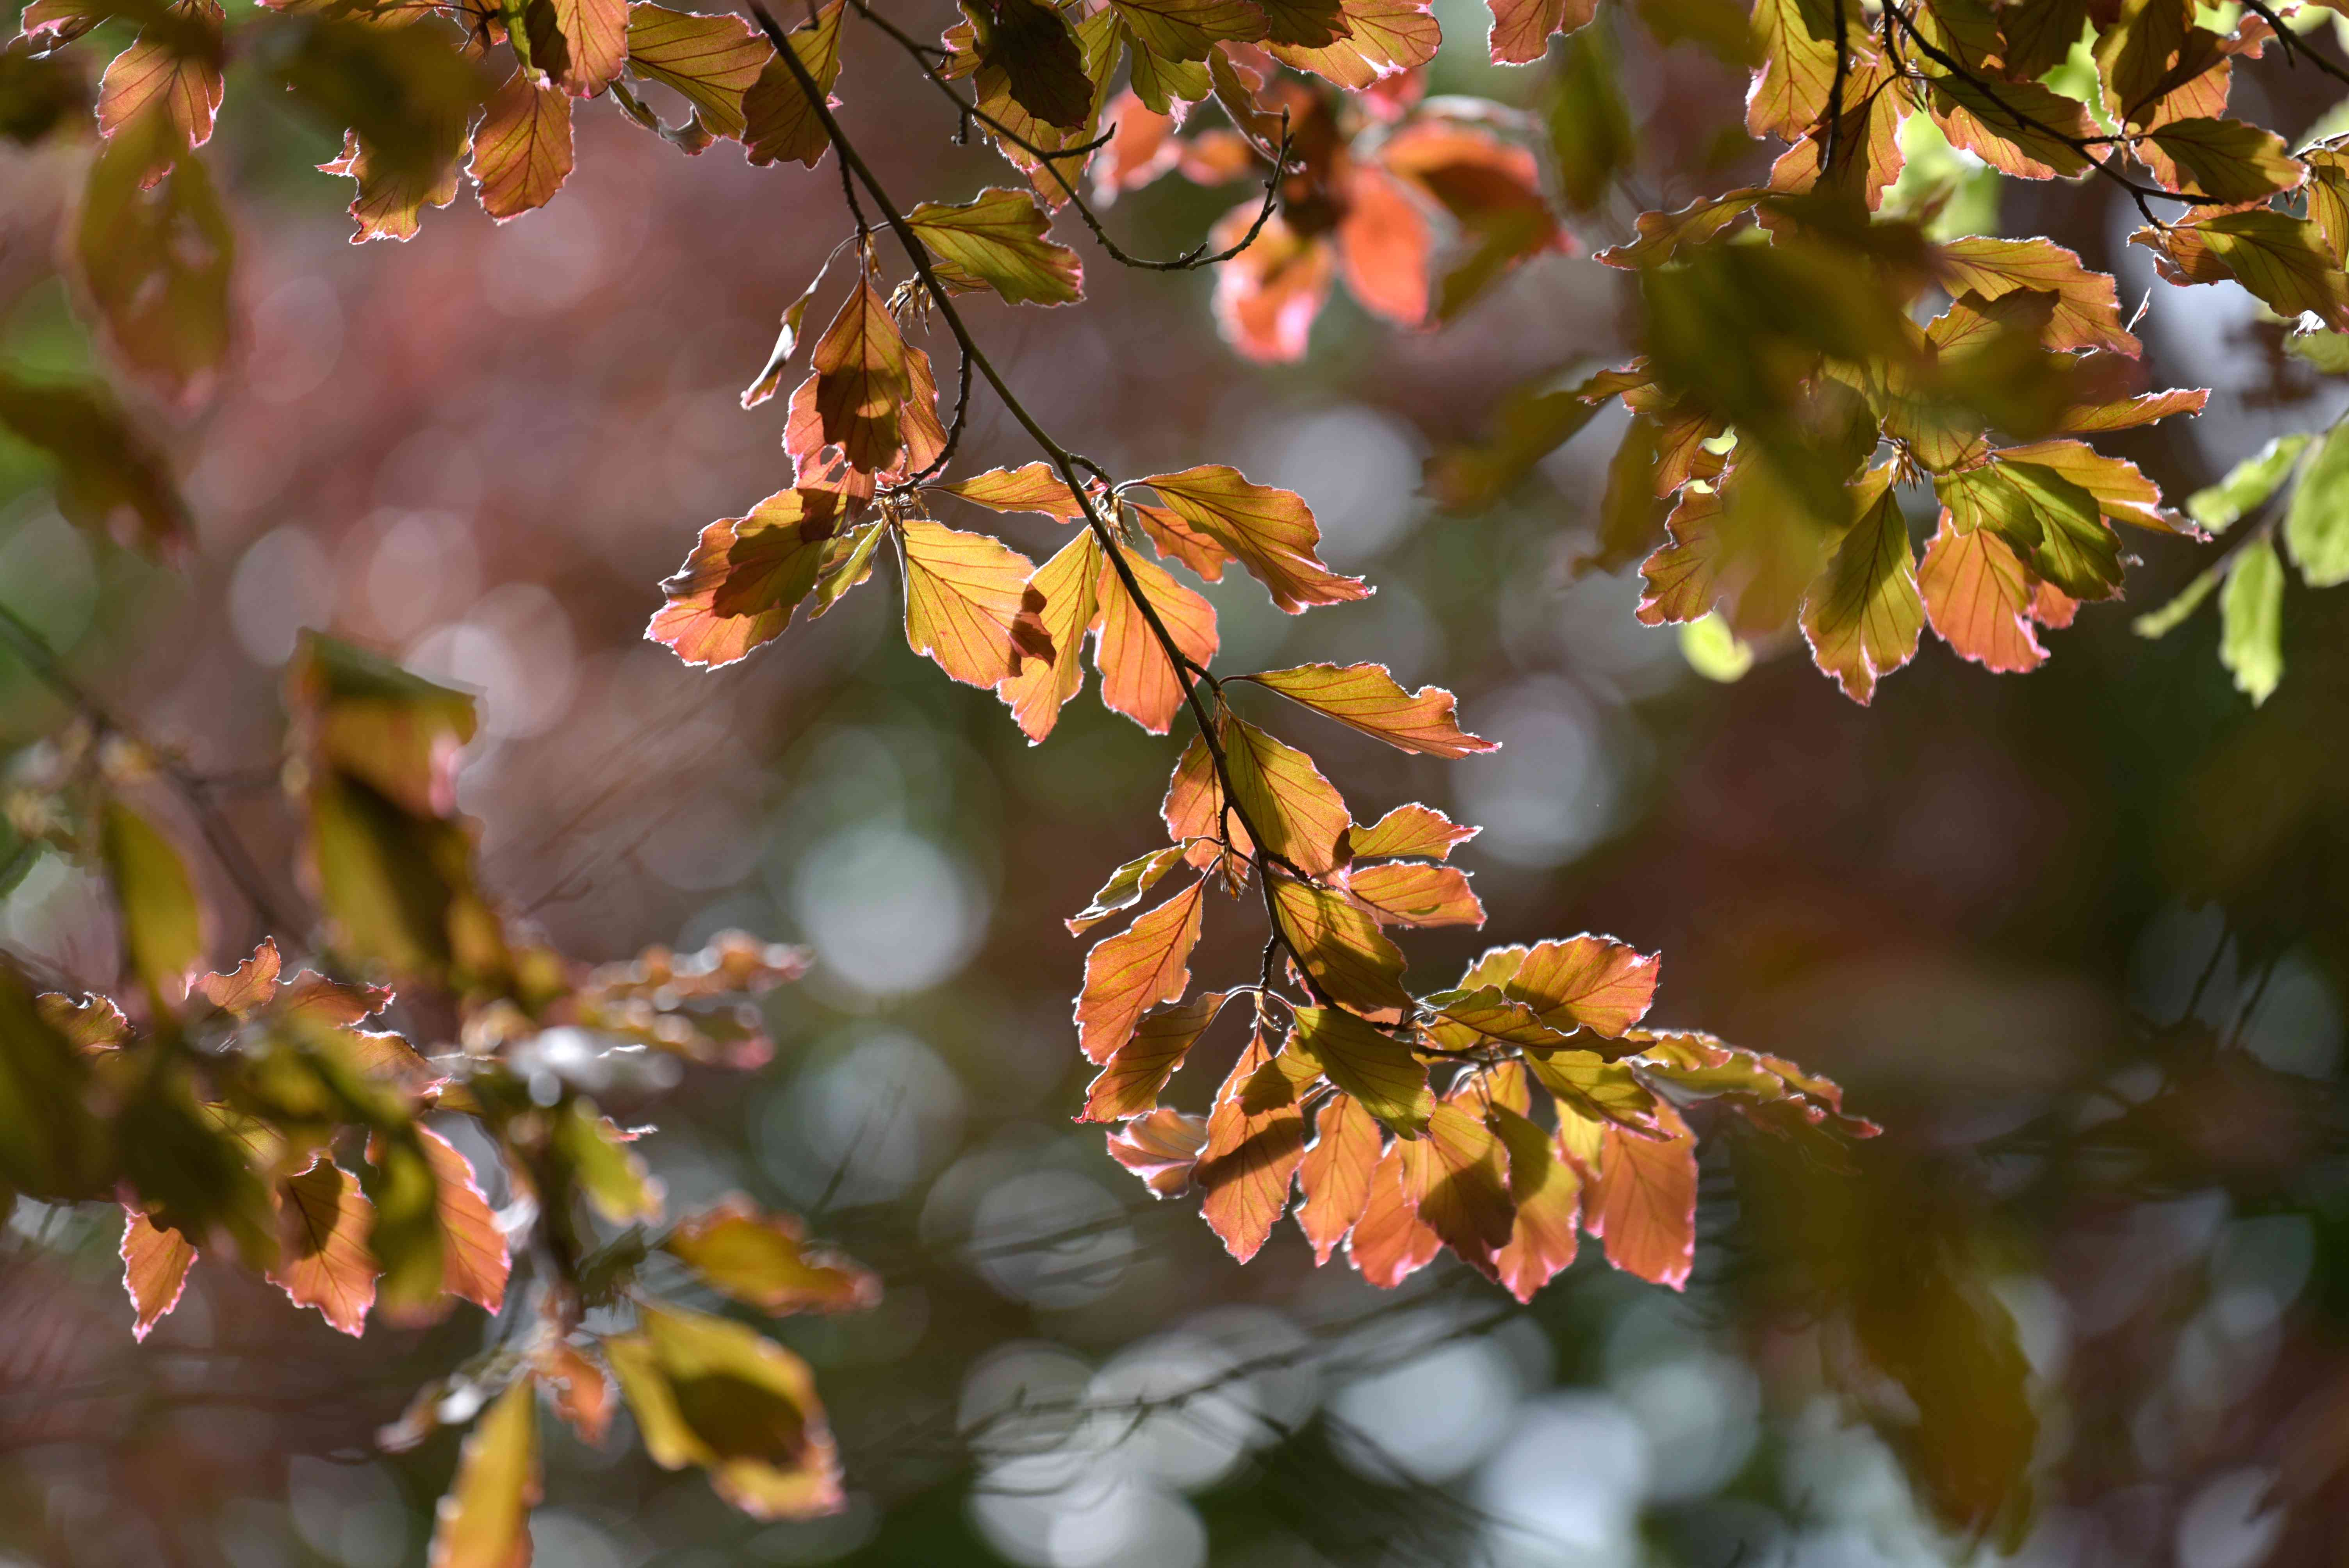 Tricolor beech tree stem with copper brown and yellow leaves